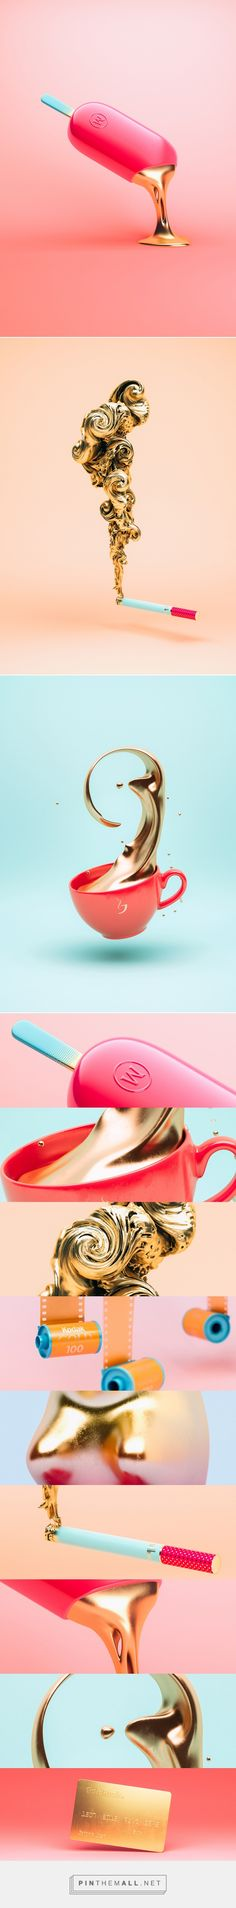 on Behance… – a grouped images picture awesome GoldRush on Behance. - a grouped images pictureawesome GoldRush on Behance. - a grouped images picture Layout Design, Design Art, Web Design, Graphic Design Inspiration, Creative Inspiration, Photoshop, Art Et Illustration, Arte Pop, Design Graphique